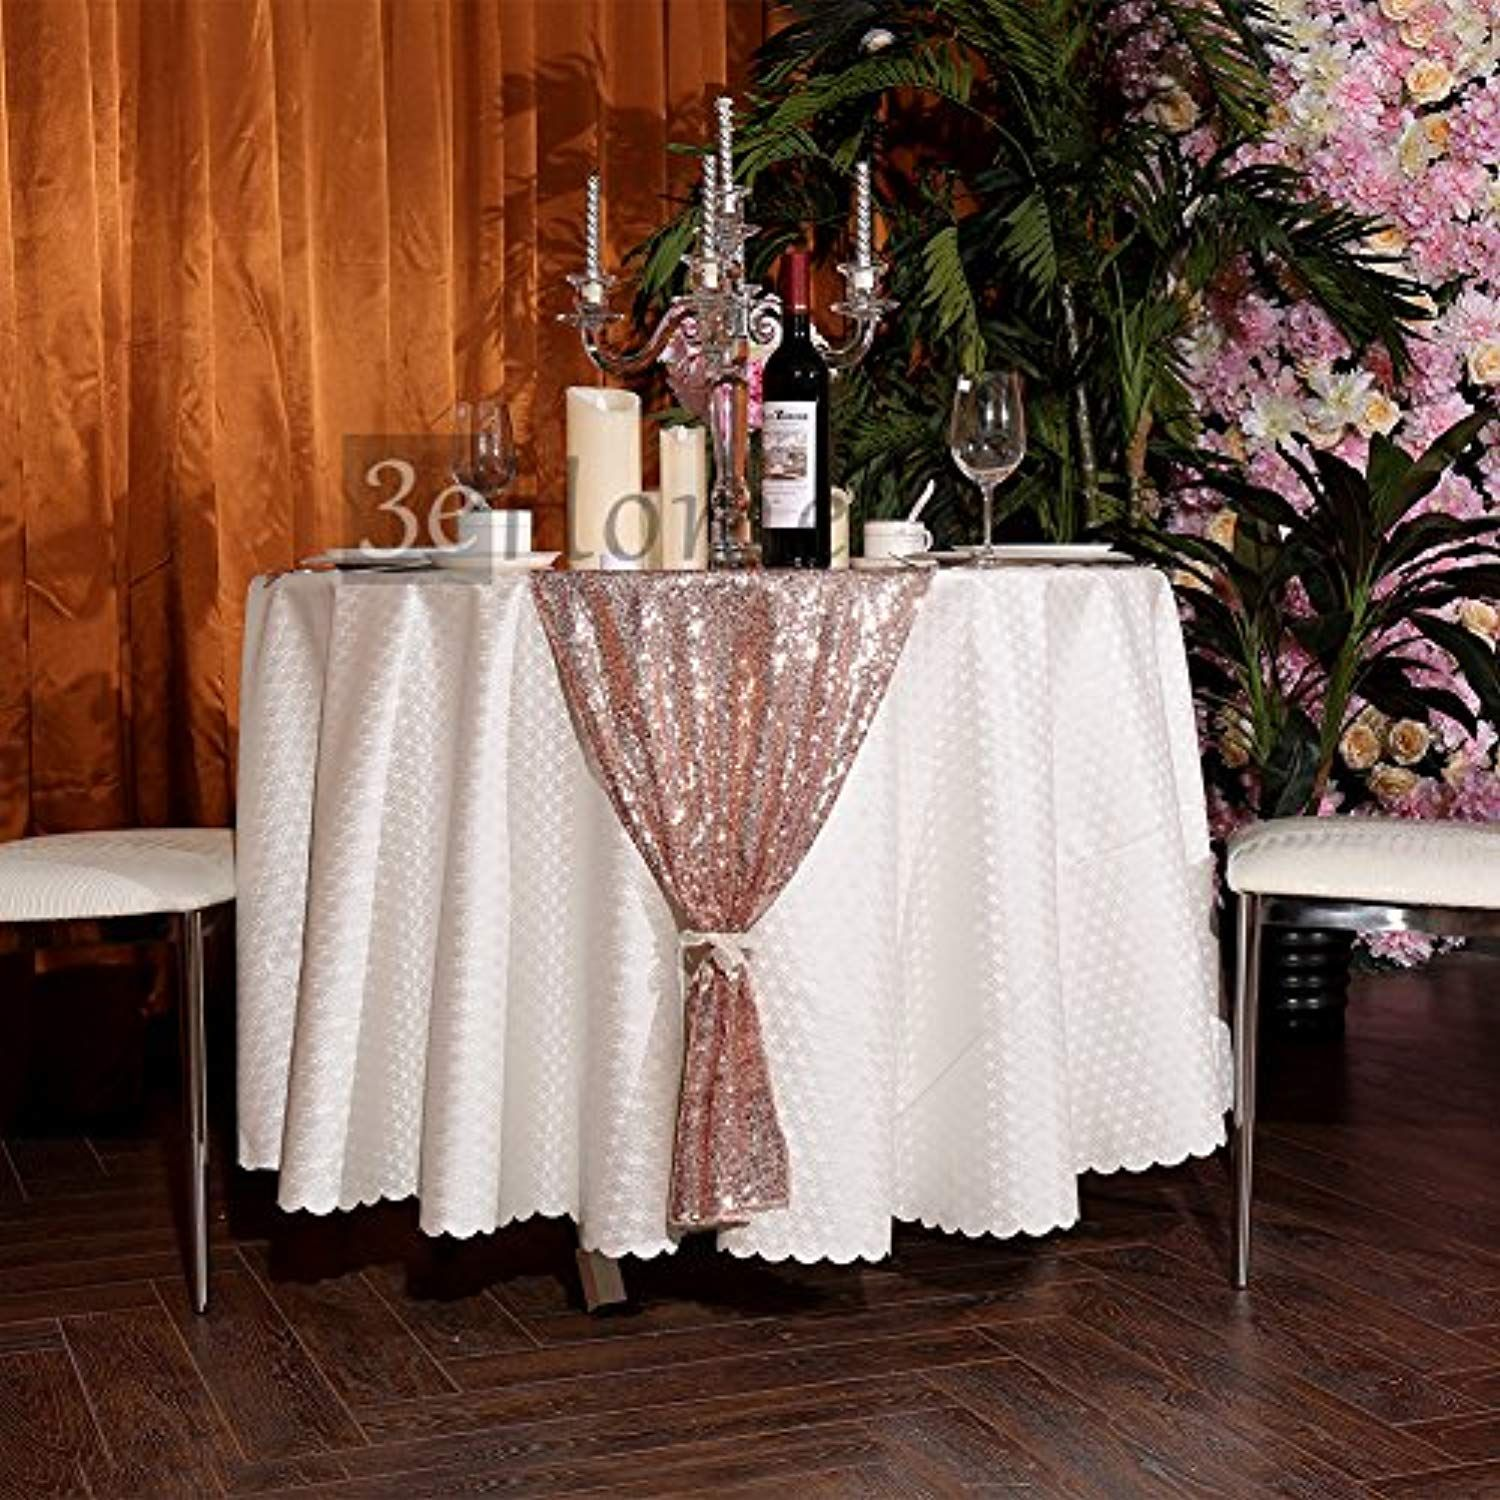 3e Home 12x108 Sequin Table Runner For Party Dinner Banquet Rose Gold You Can Find Out More Det Rose Gold Party Decor Party Cake Table Sequin Table Runner